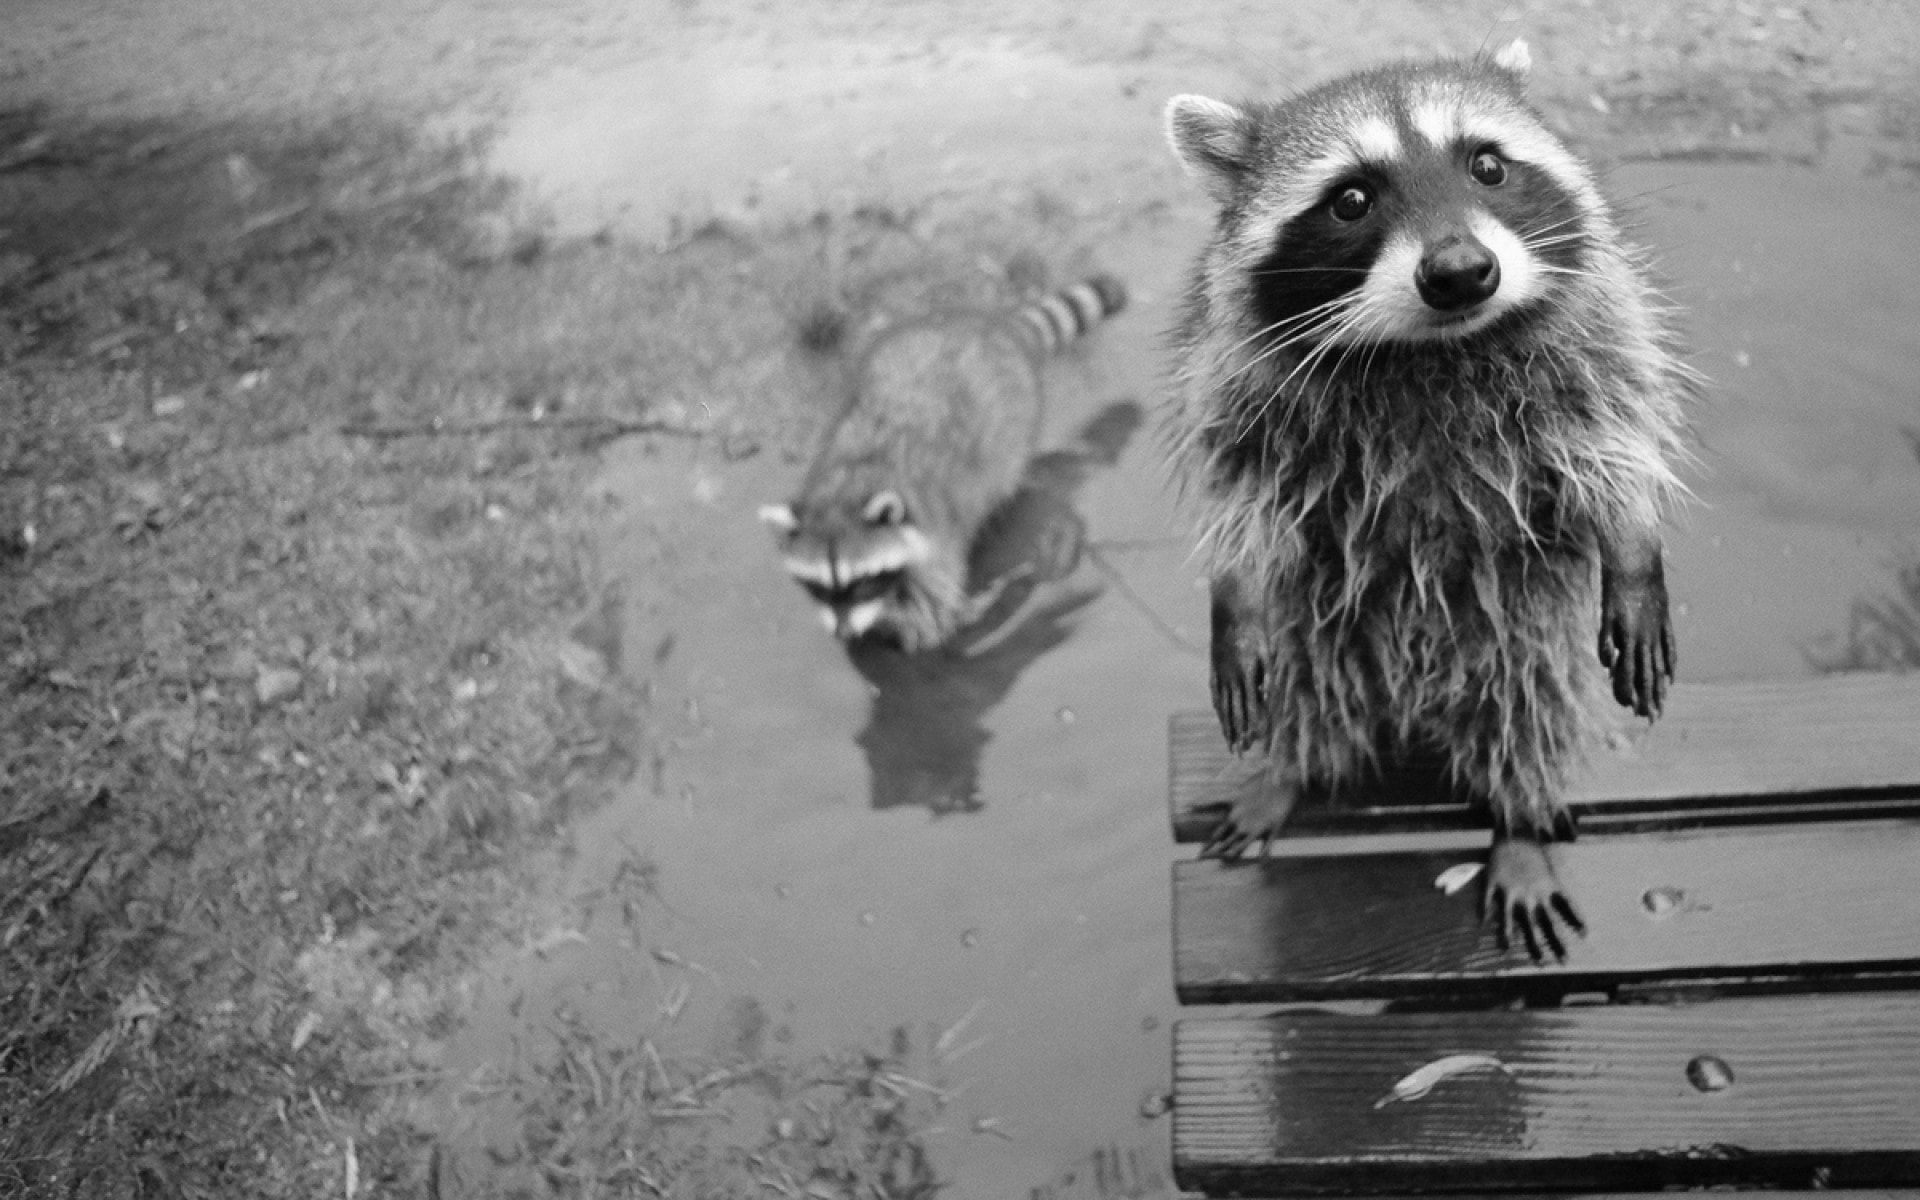 Raccoon widescreen wallpapers